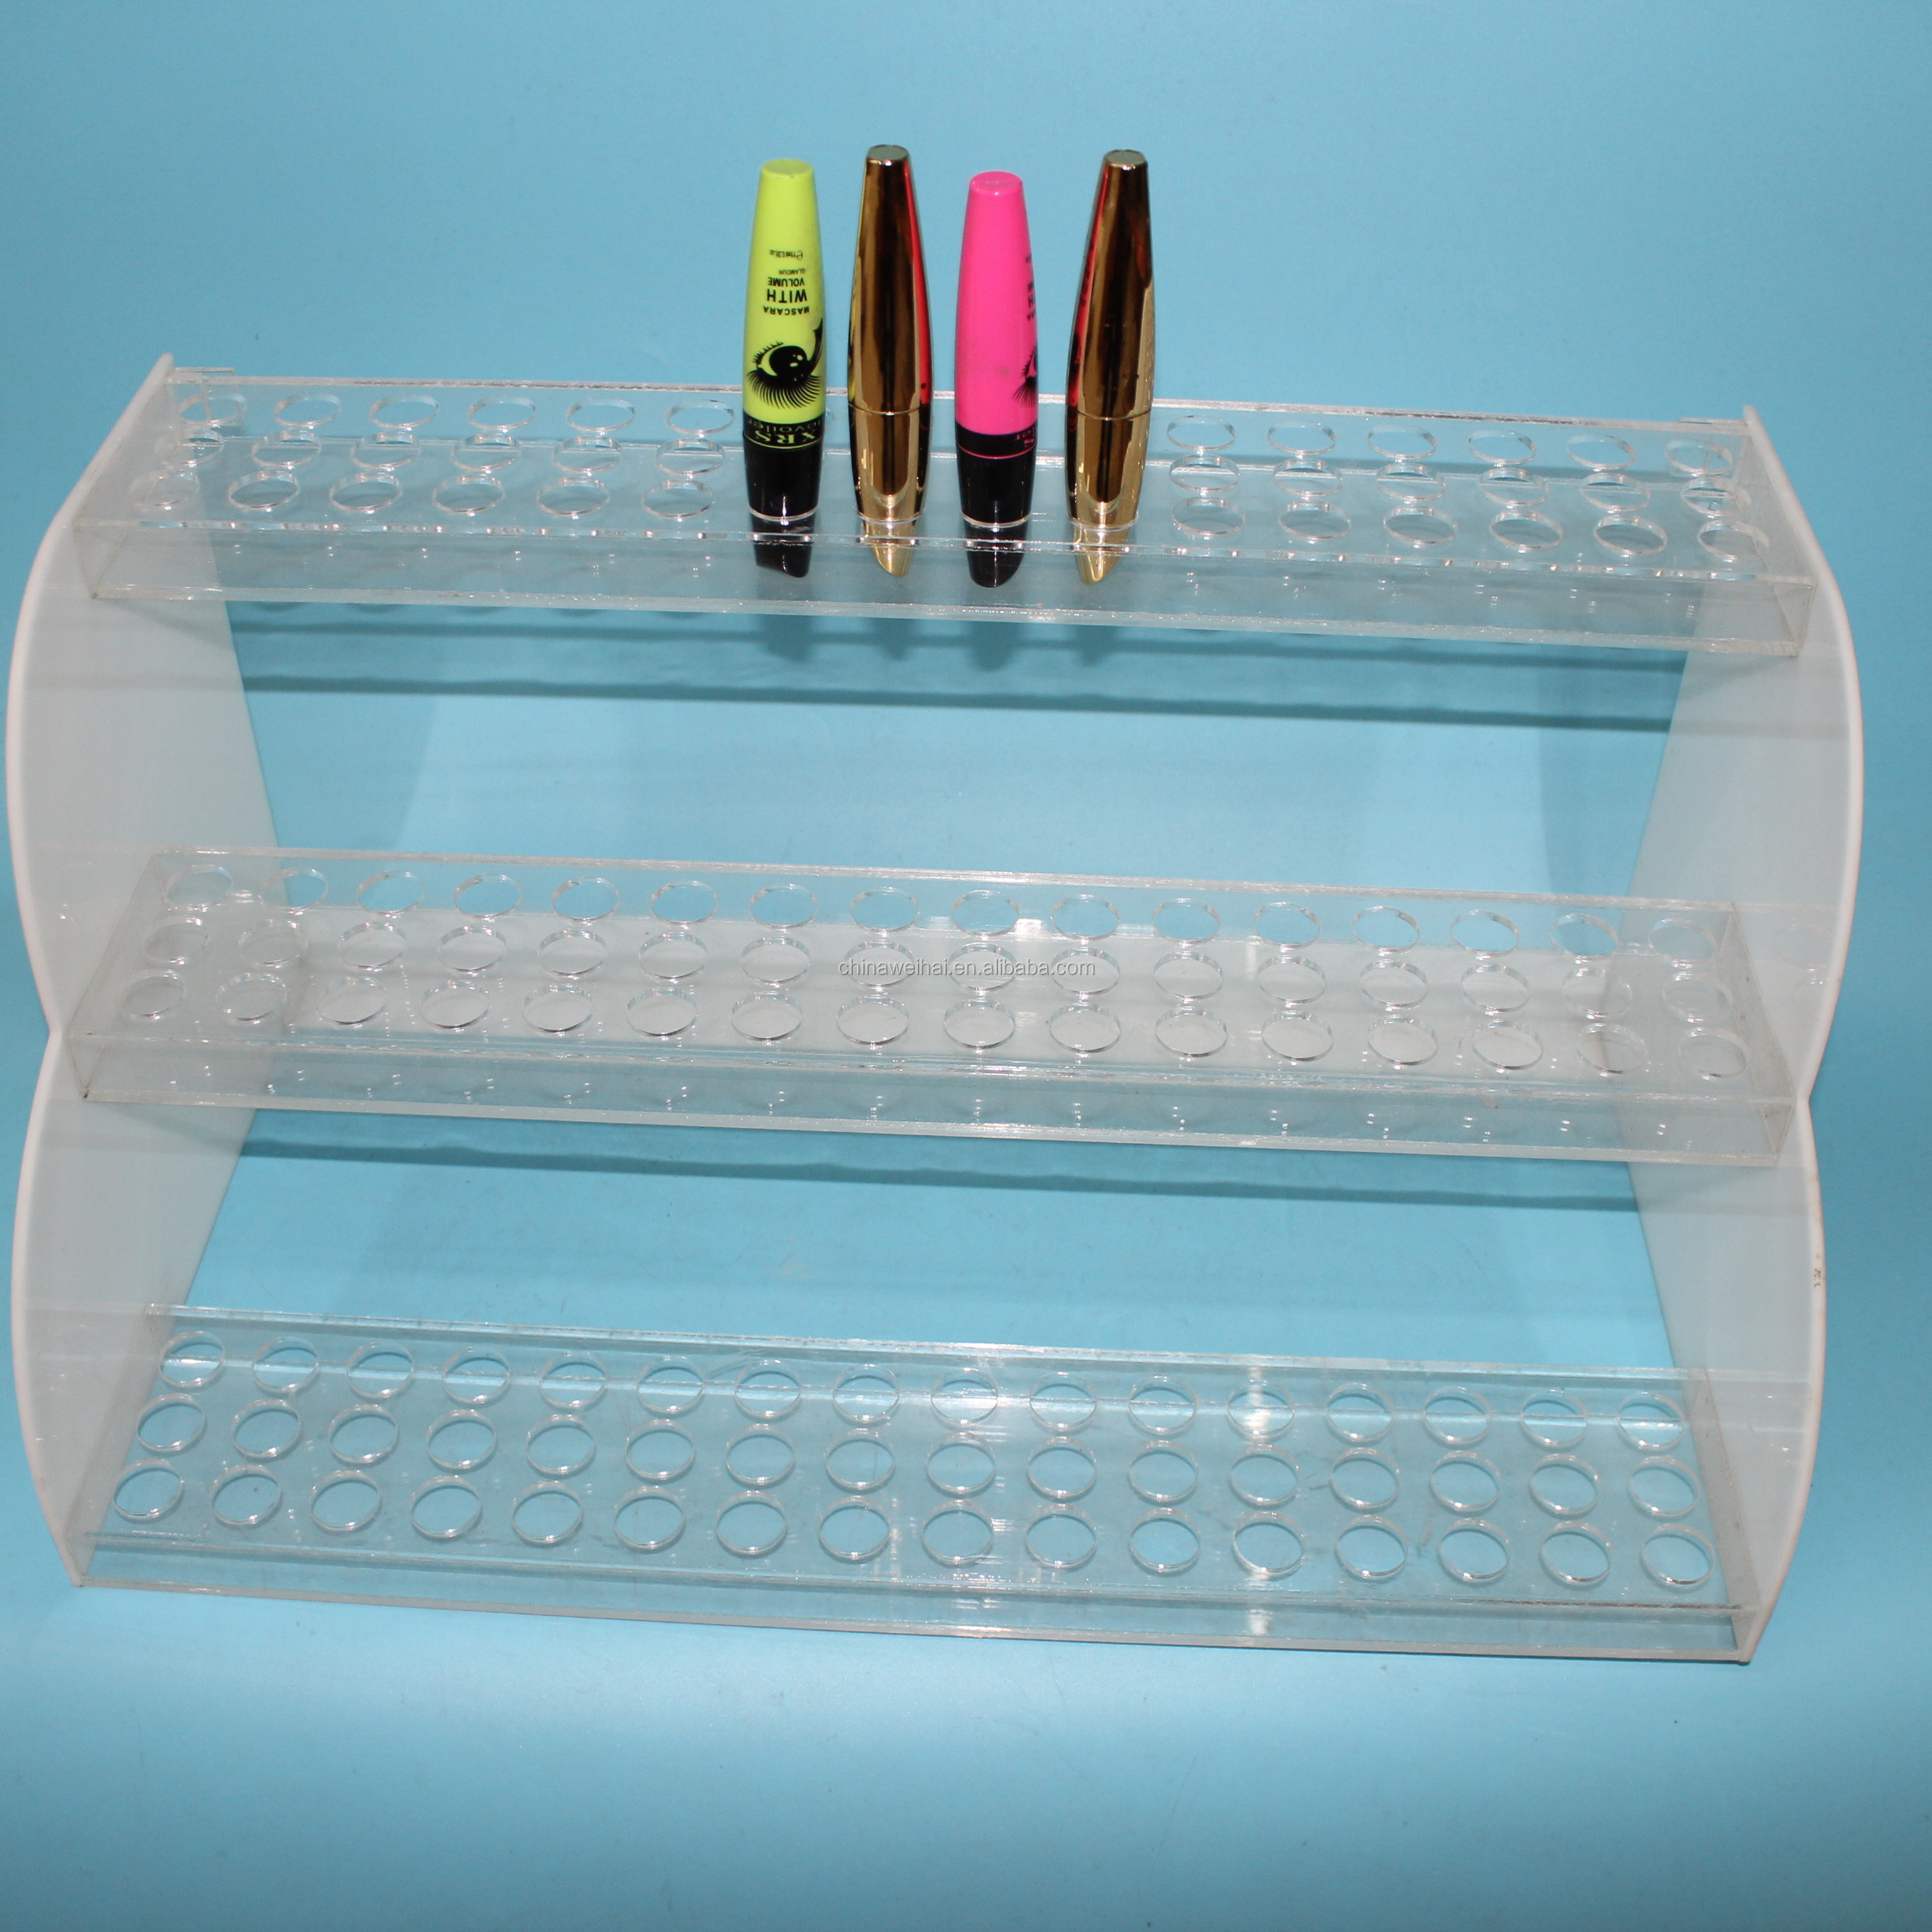 3Tiers White Acrylic Mascara Display Stands